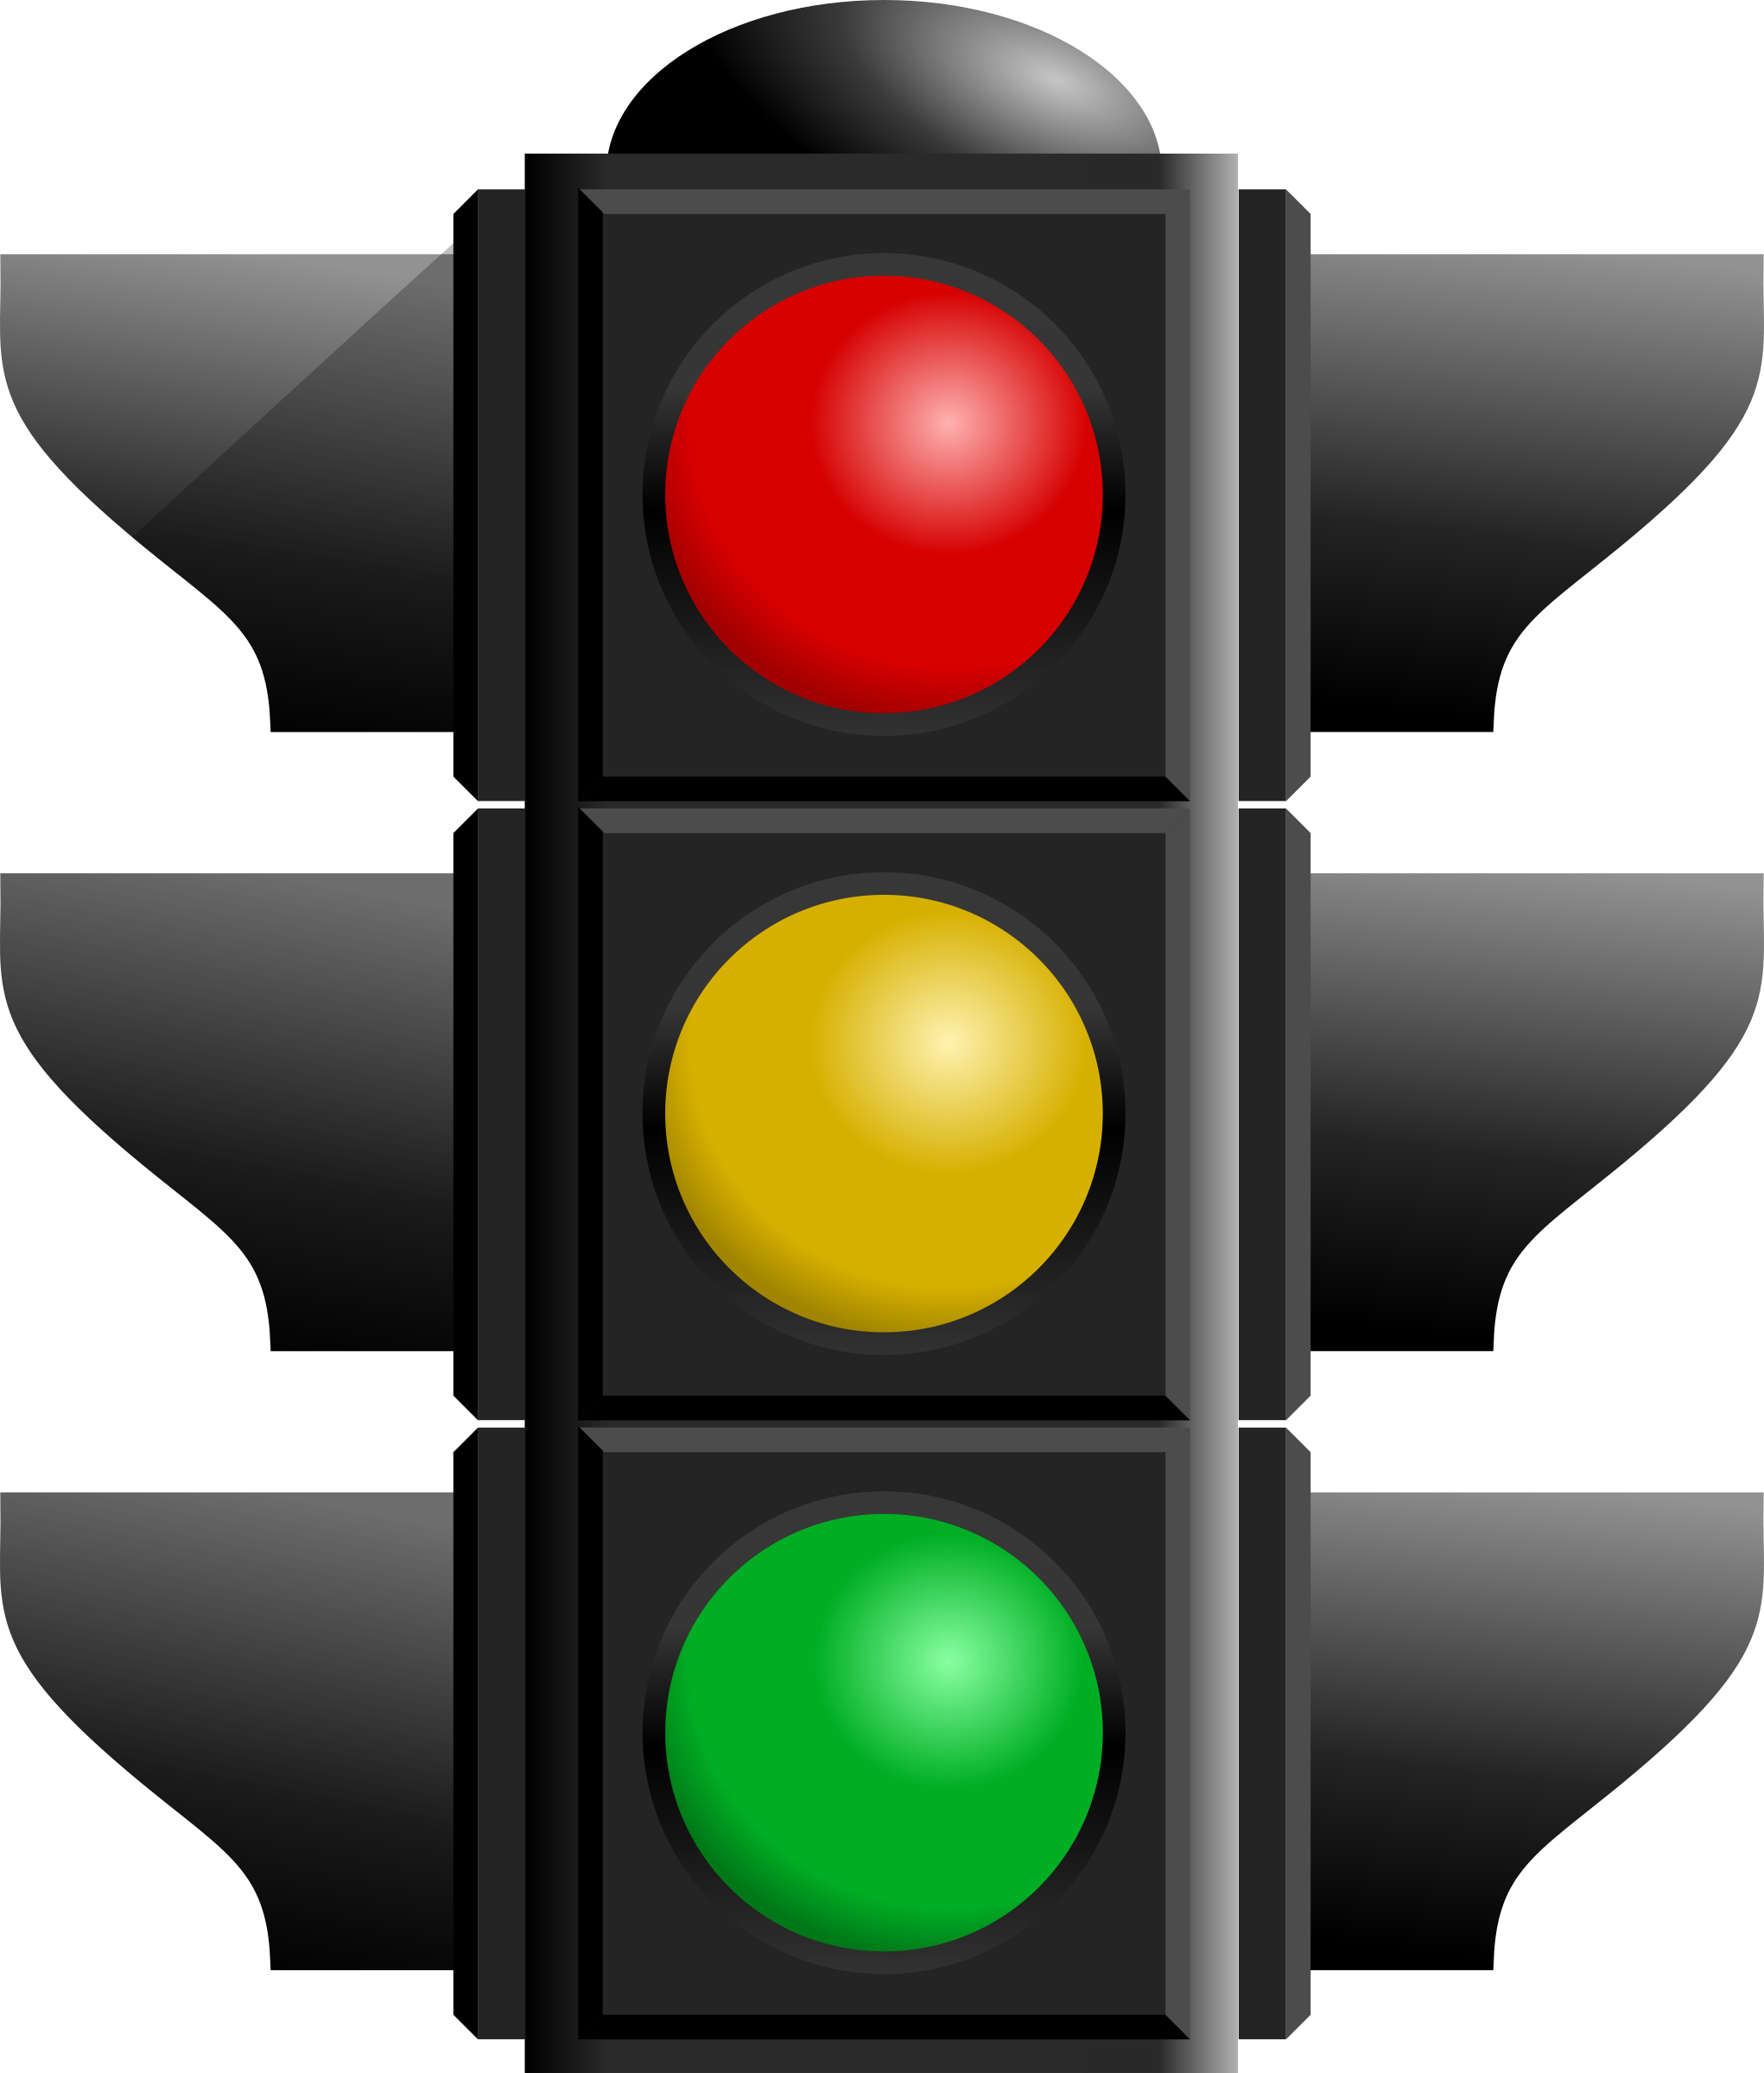 Clipart road intersection. Traffic light png images